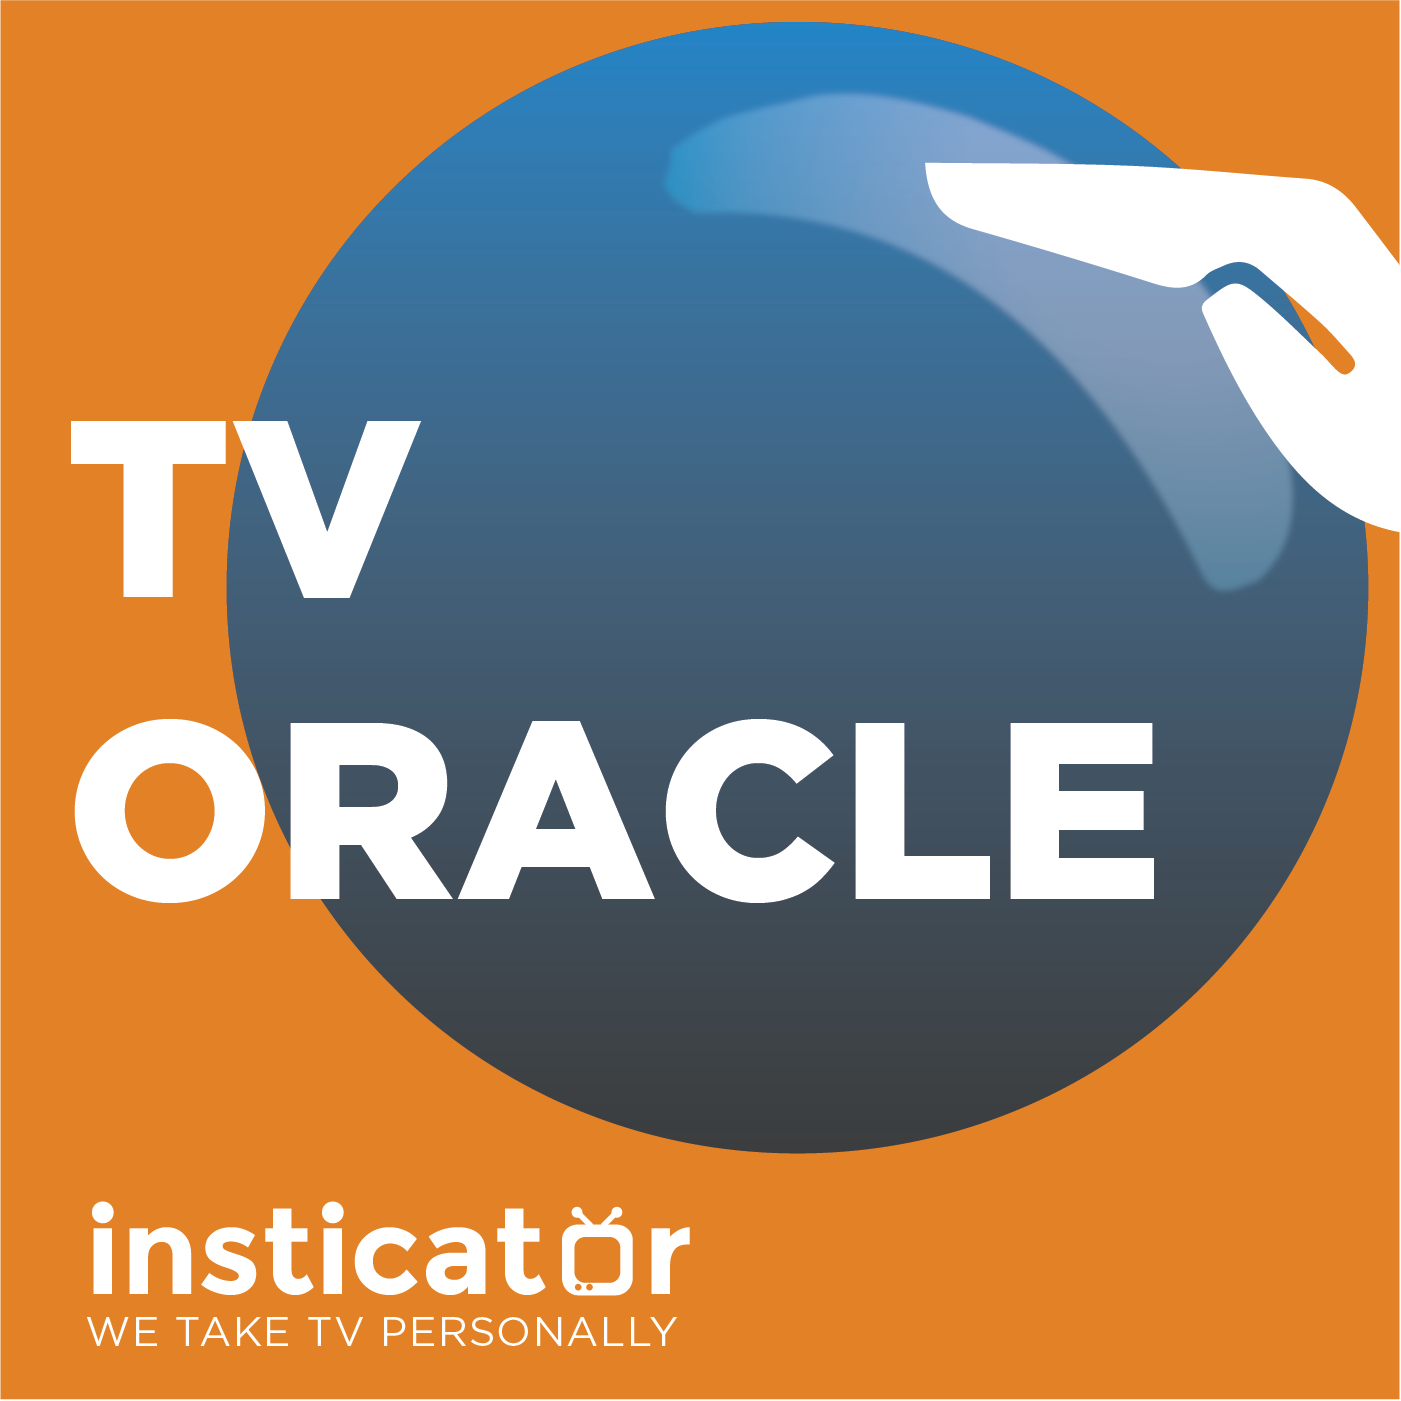 The TV Oracle -Blog.Insticator.com